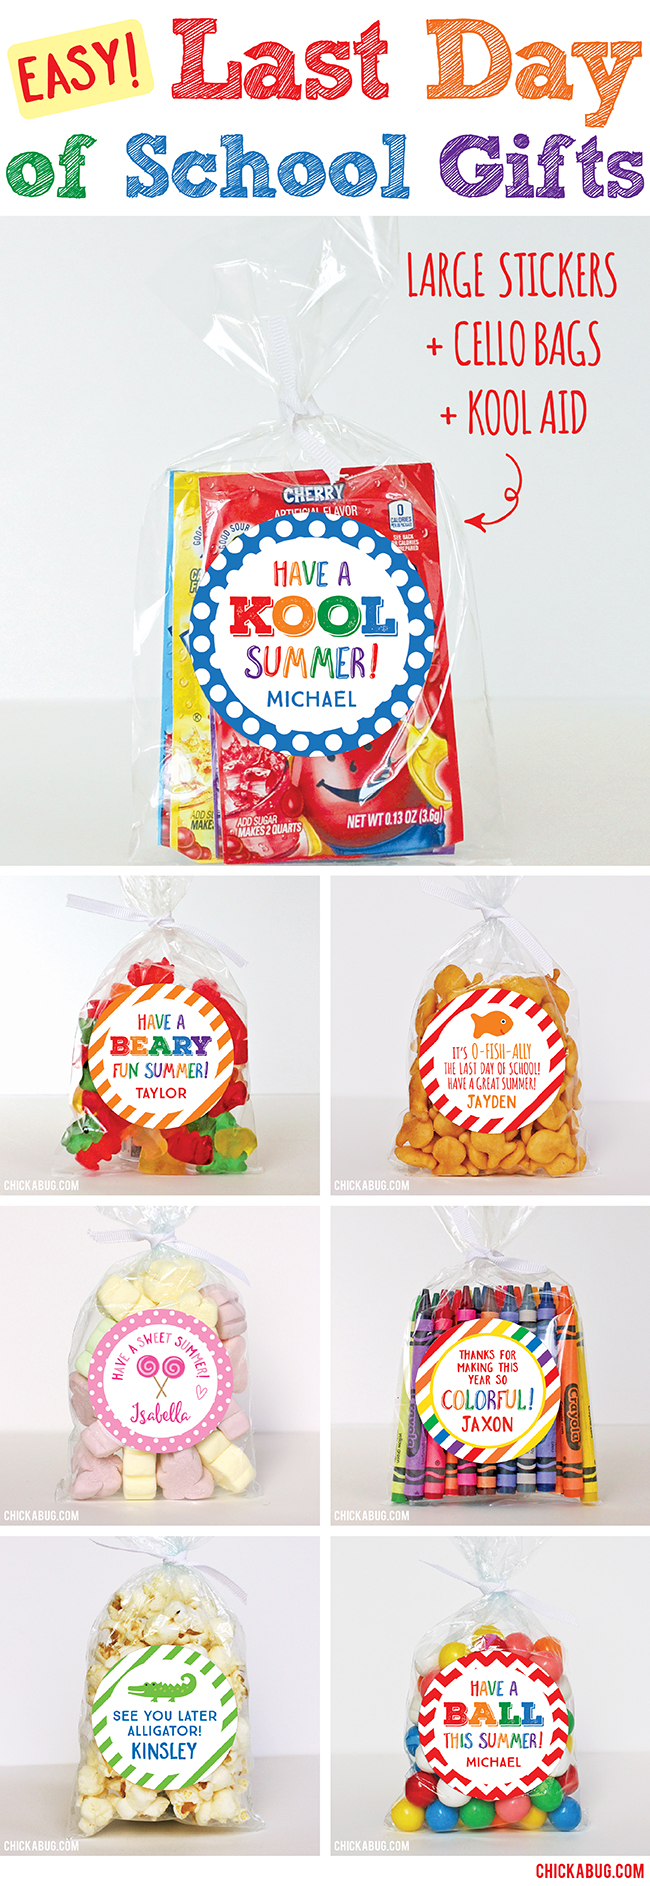 Easy gifts for the last day of school! Personalized stickers & treat bags